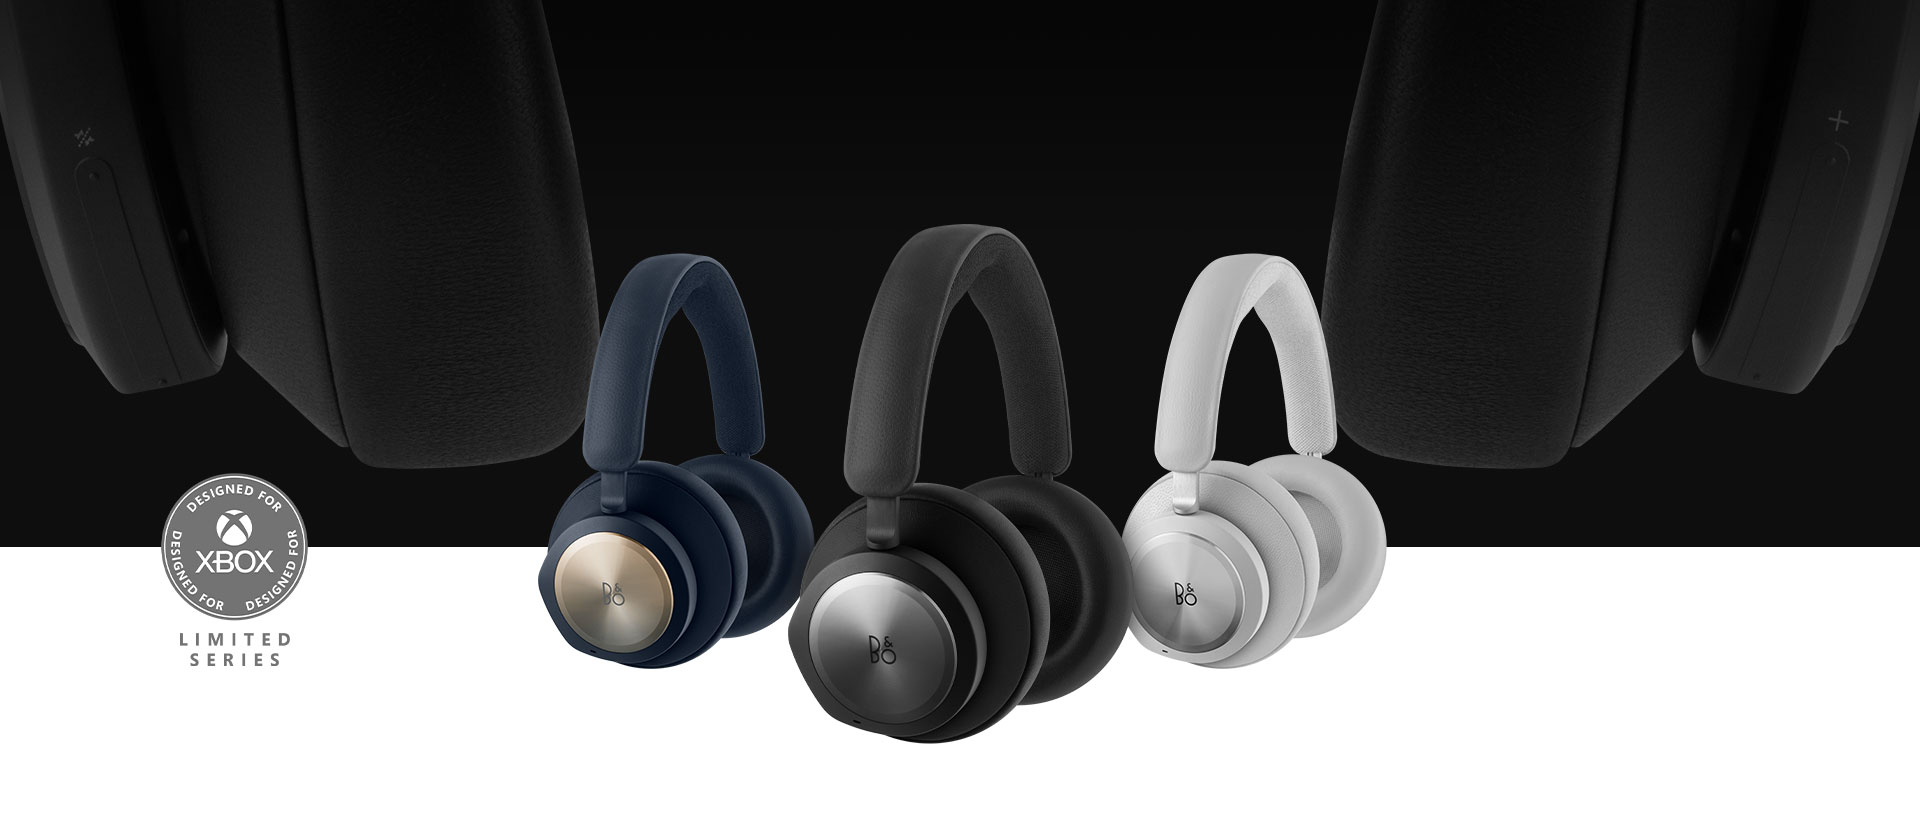 Band and Olufsen black headset in front with the grey and navy headset beside it